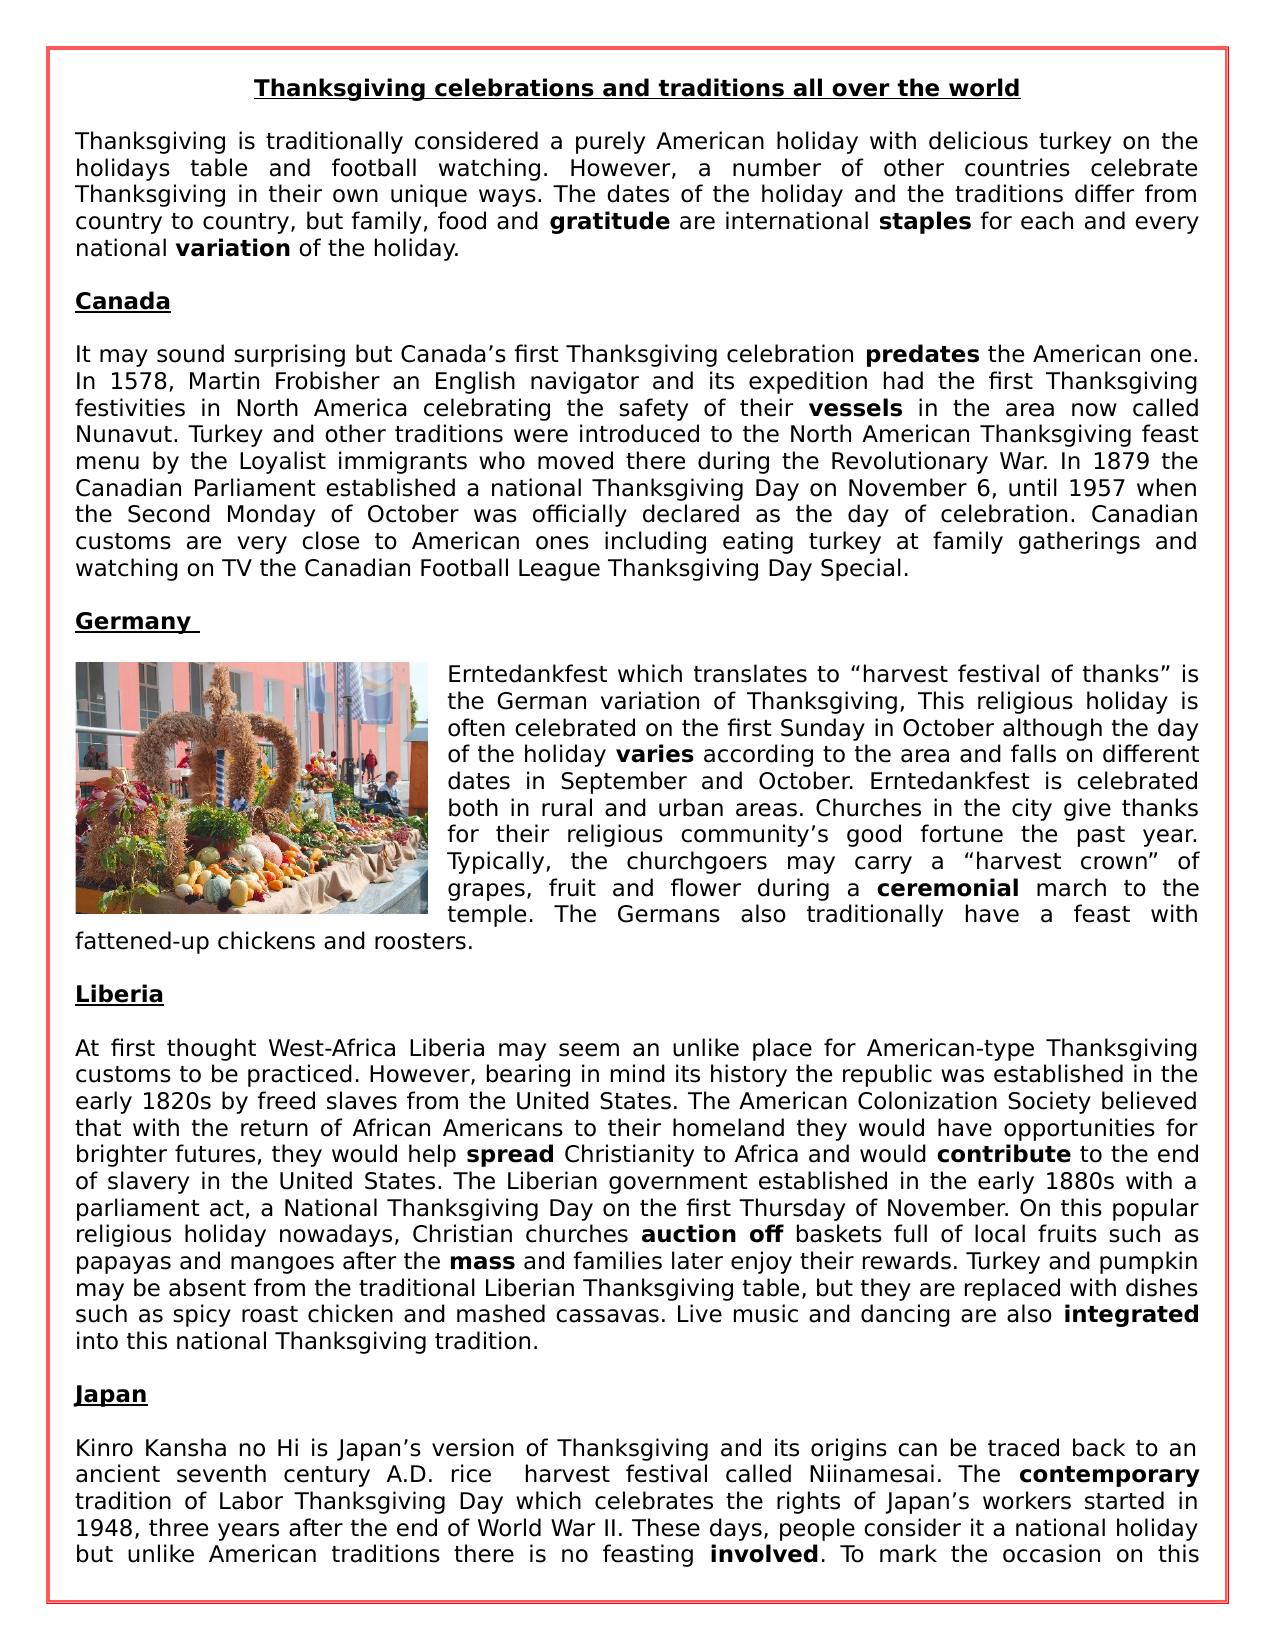 Thanksgiving Traditions All Over The World Reading Comprehension Worksheet V Reading Comprehension Worksheets Reading Comprehension Comprehension Worksheets [ 1651 x 1275 Pixel ]